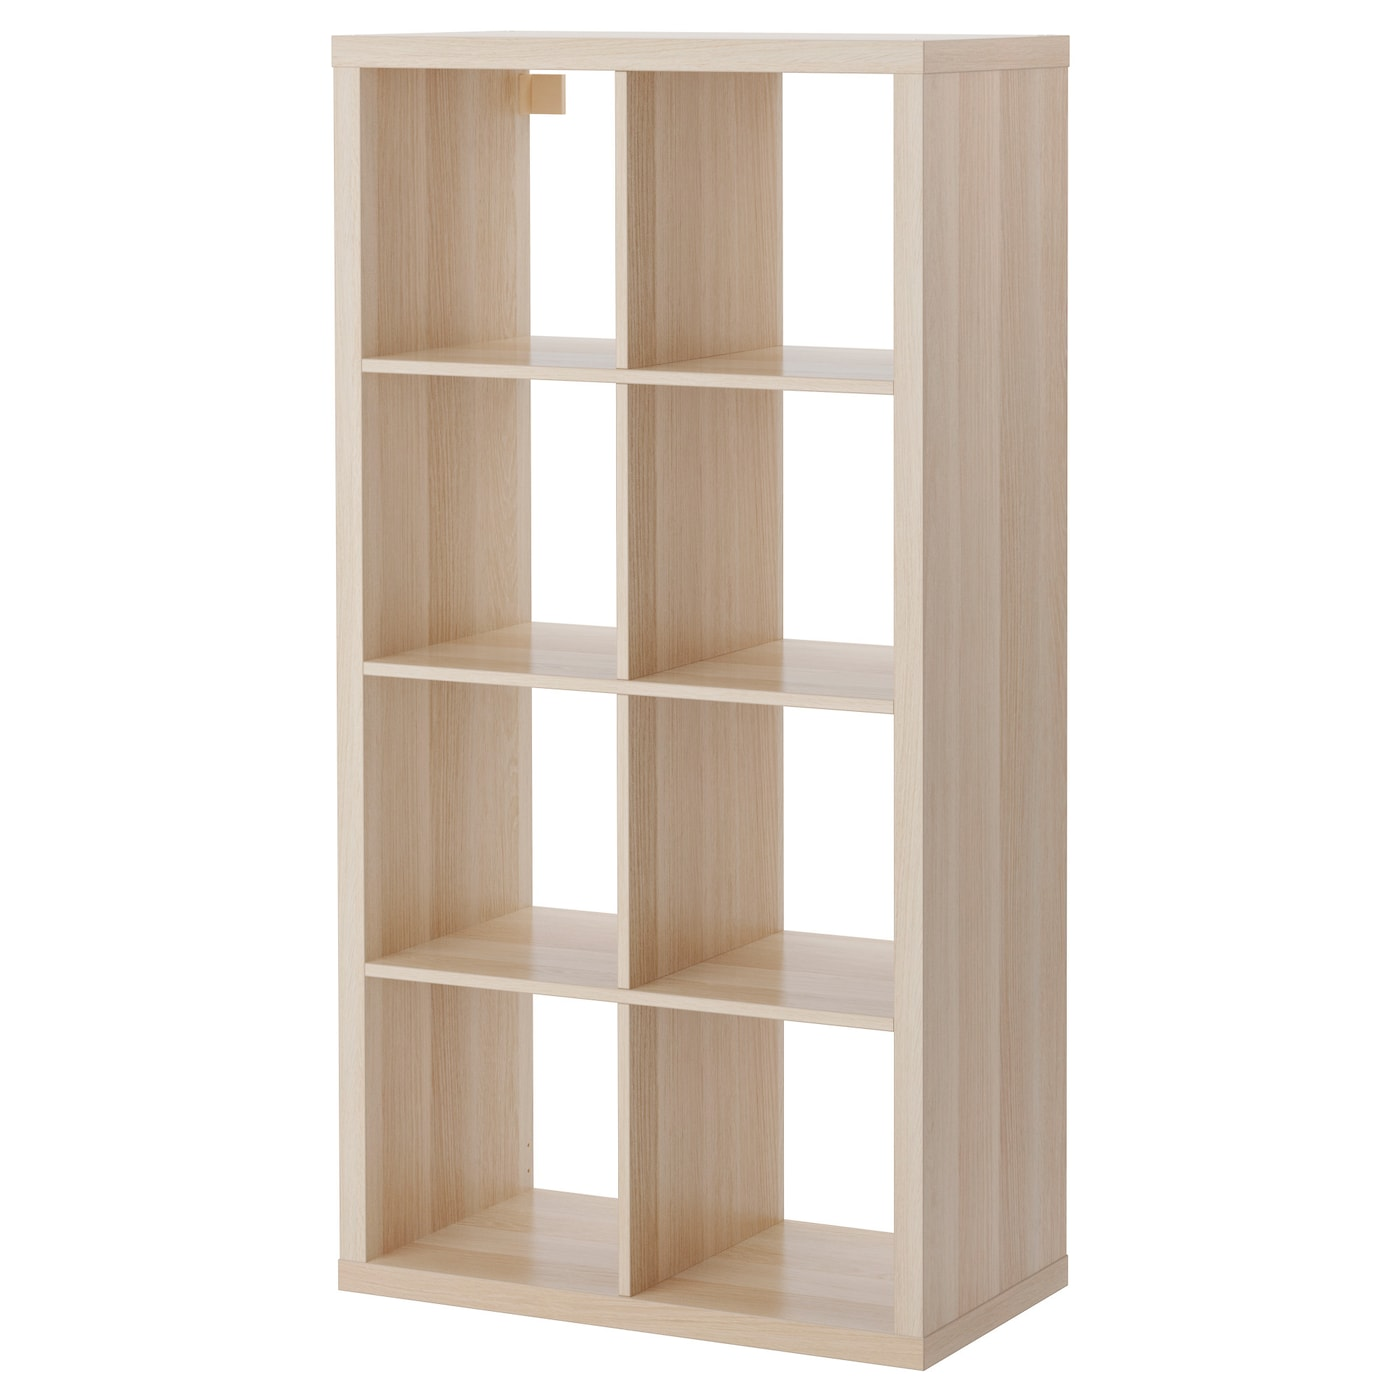 wooden cubes furniture. IKEA KALLAX Shelving Unit Wooden Cubes Furniture